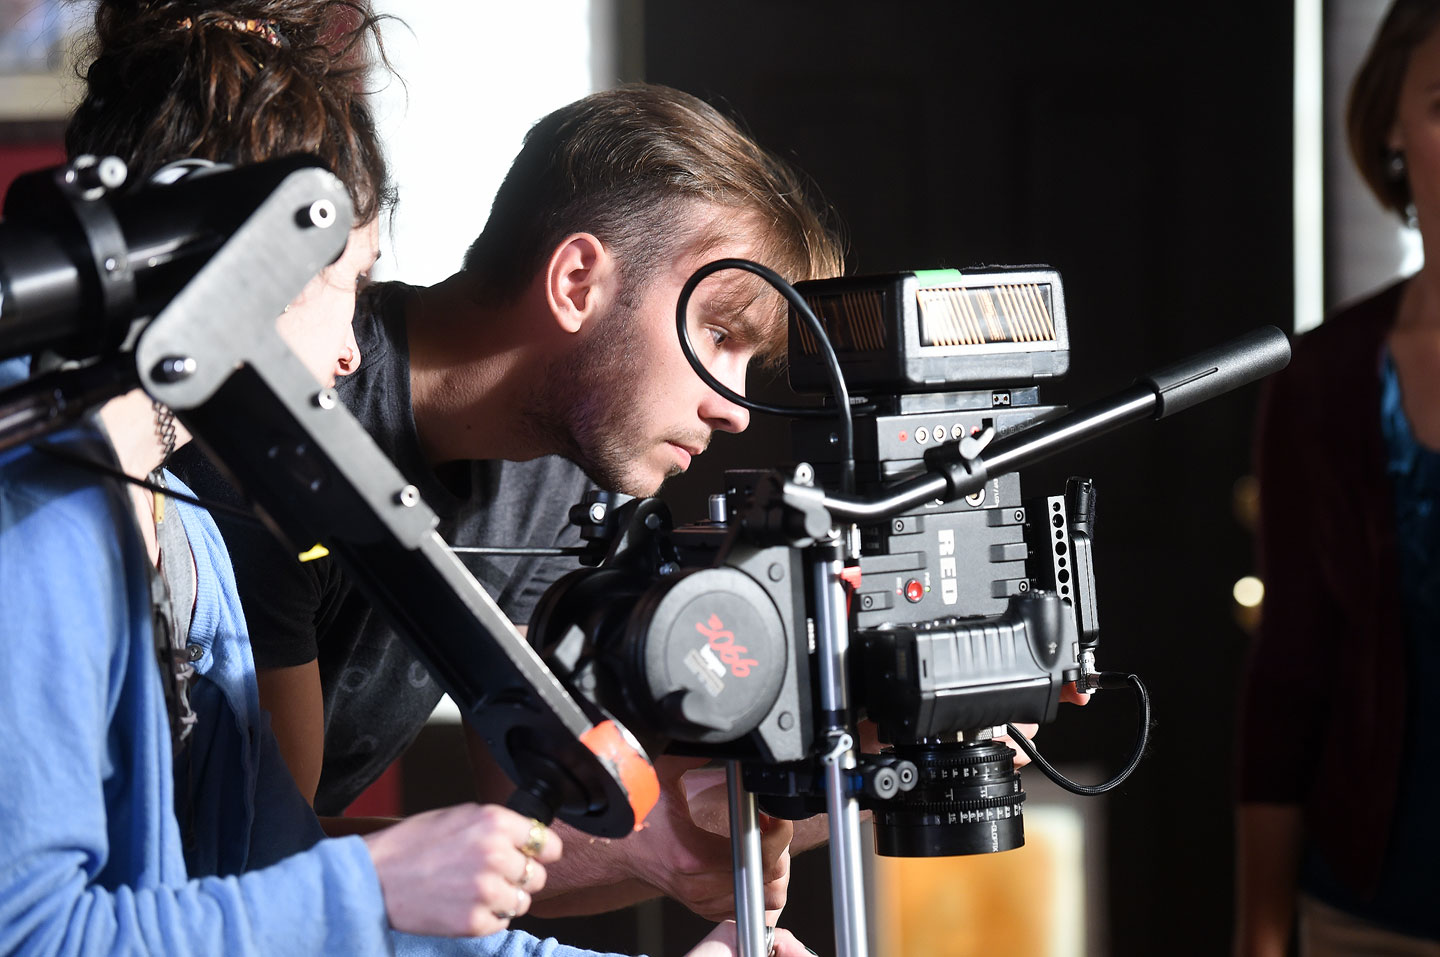 Filmmaking students on set with camera